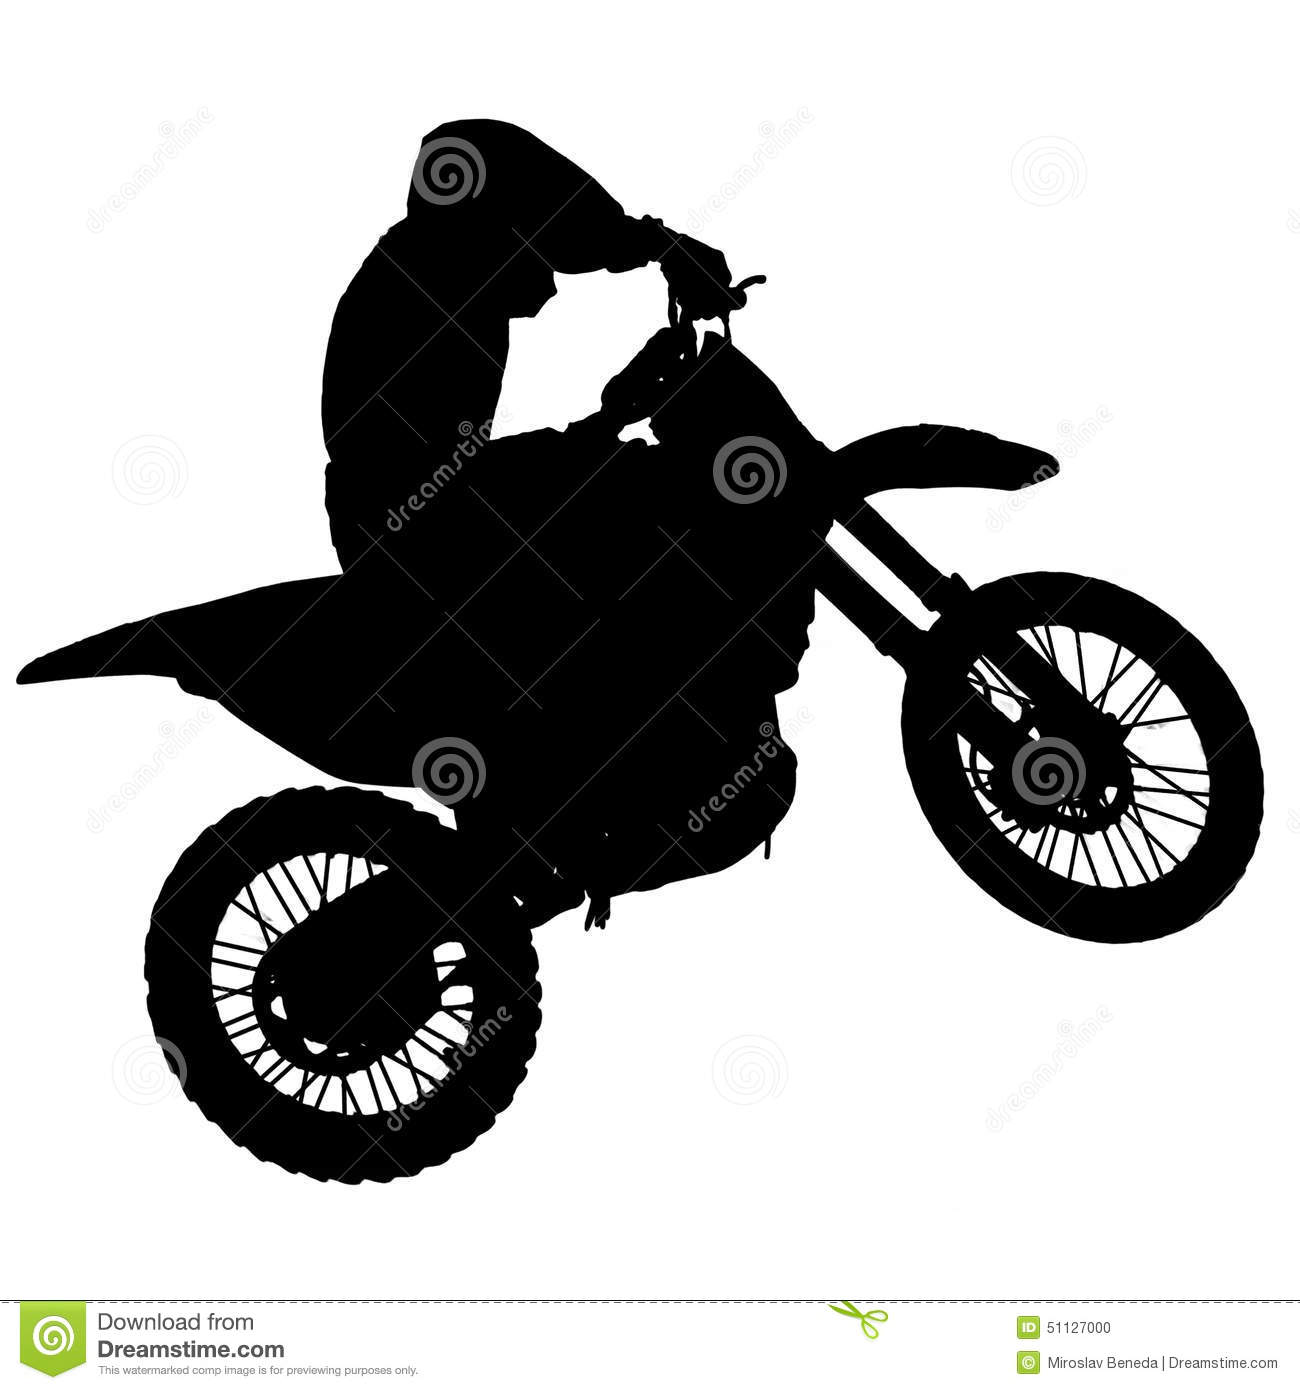 Motocross Silhouette Stock Photo Image Of Motor Cross